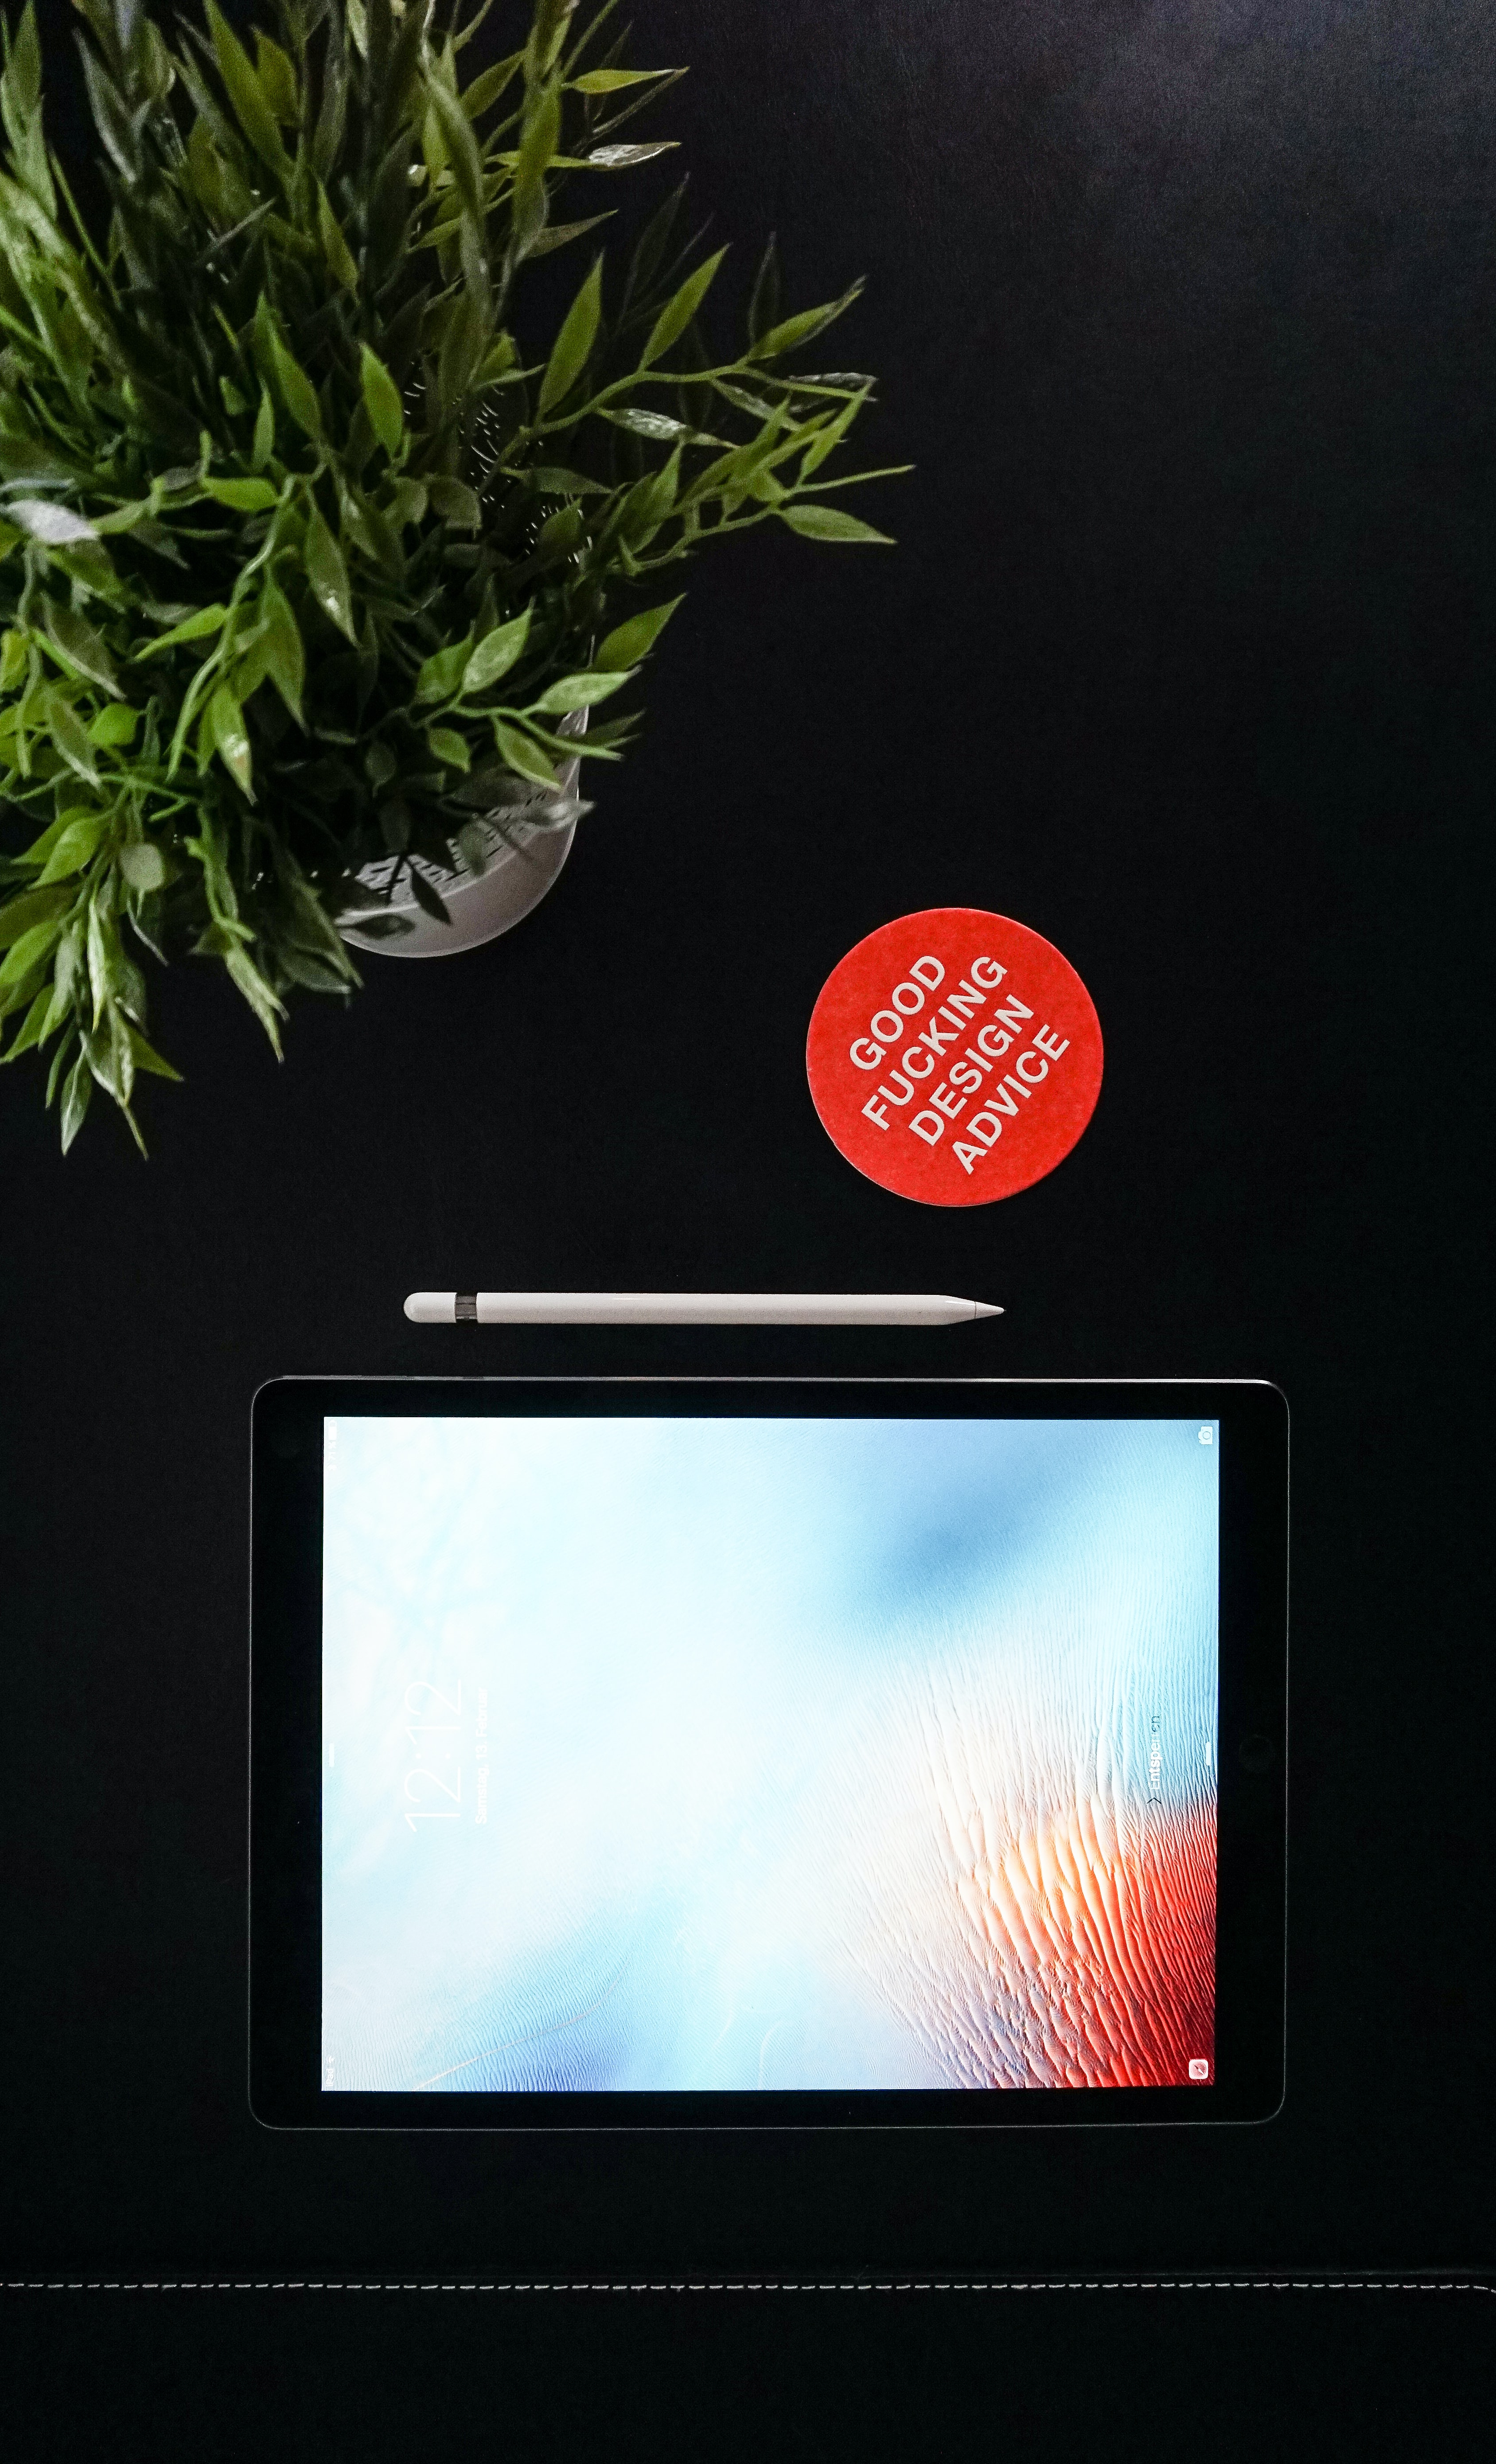 Tablet with blank display and stylus next to plant and design text in red circle